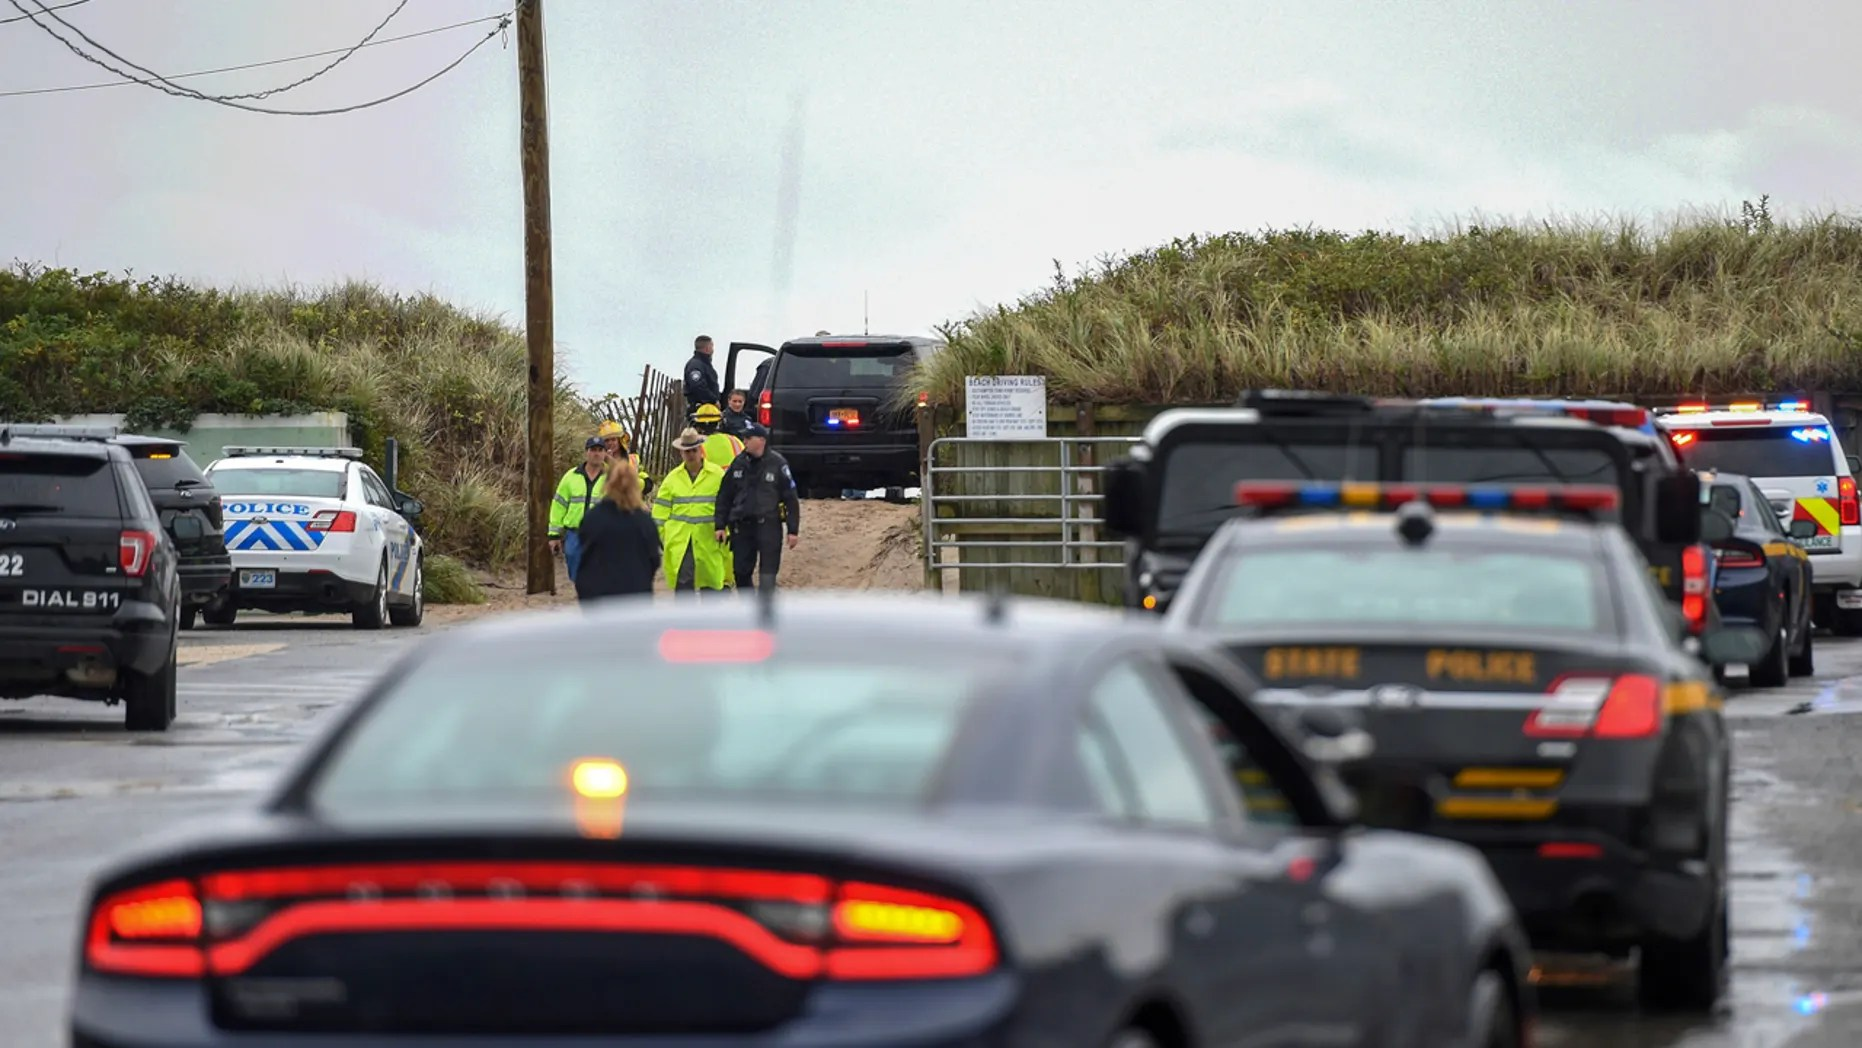 First responders gather on a beach in Quogue, on Long Island, New York, following reports of a plane crashing into the Atlantic on Saturday.